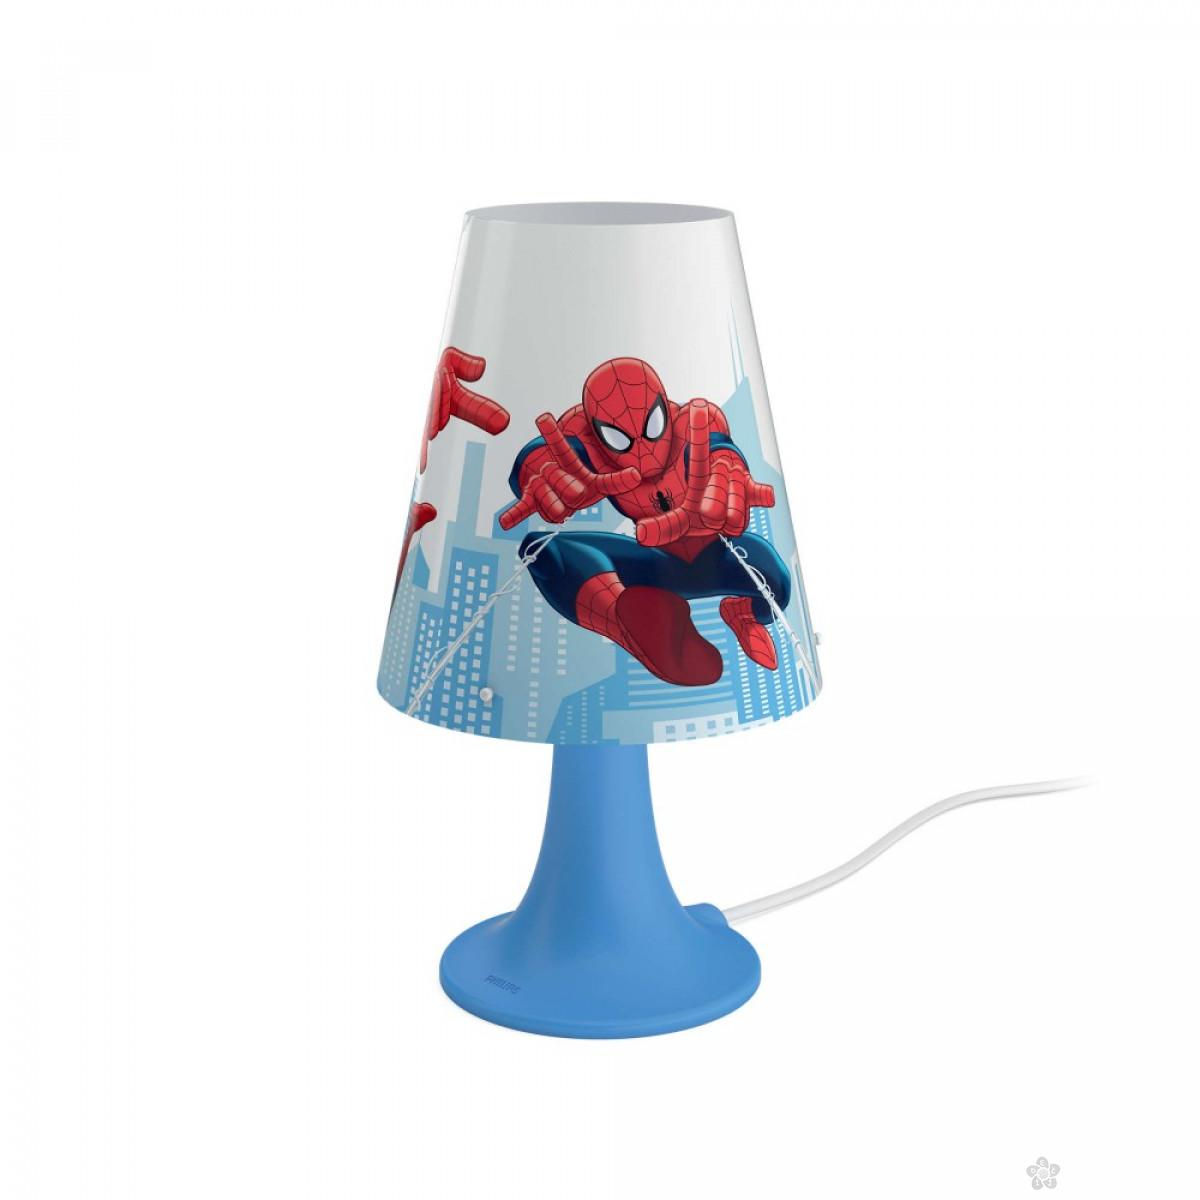 Stona lampa Philips Spiderman 71795/40/16